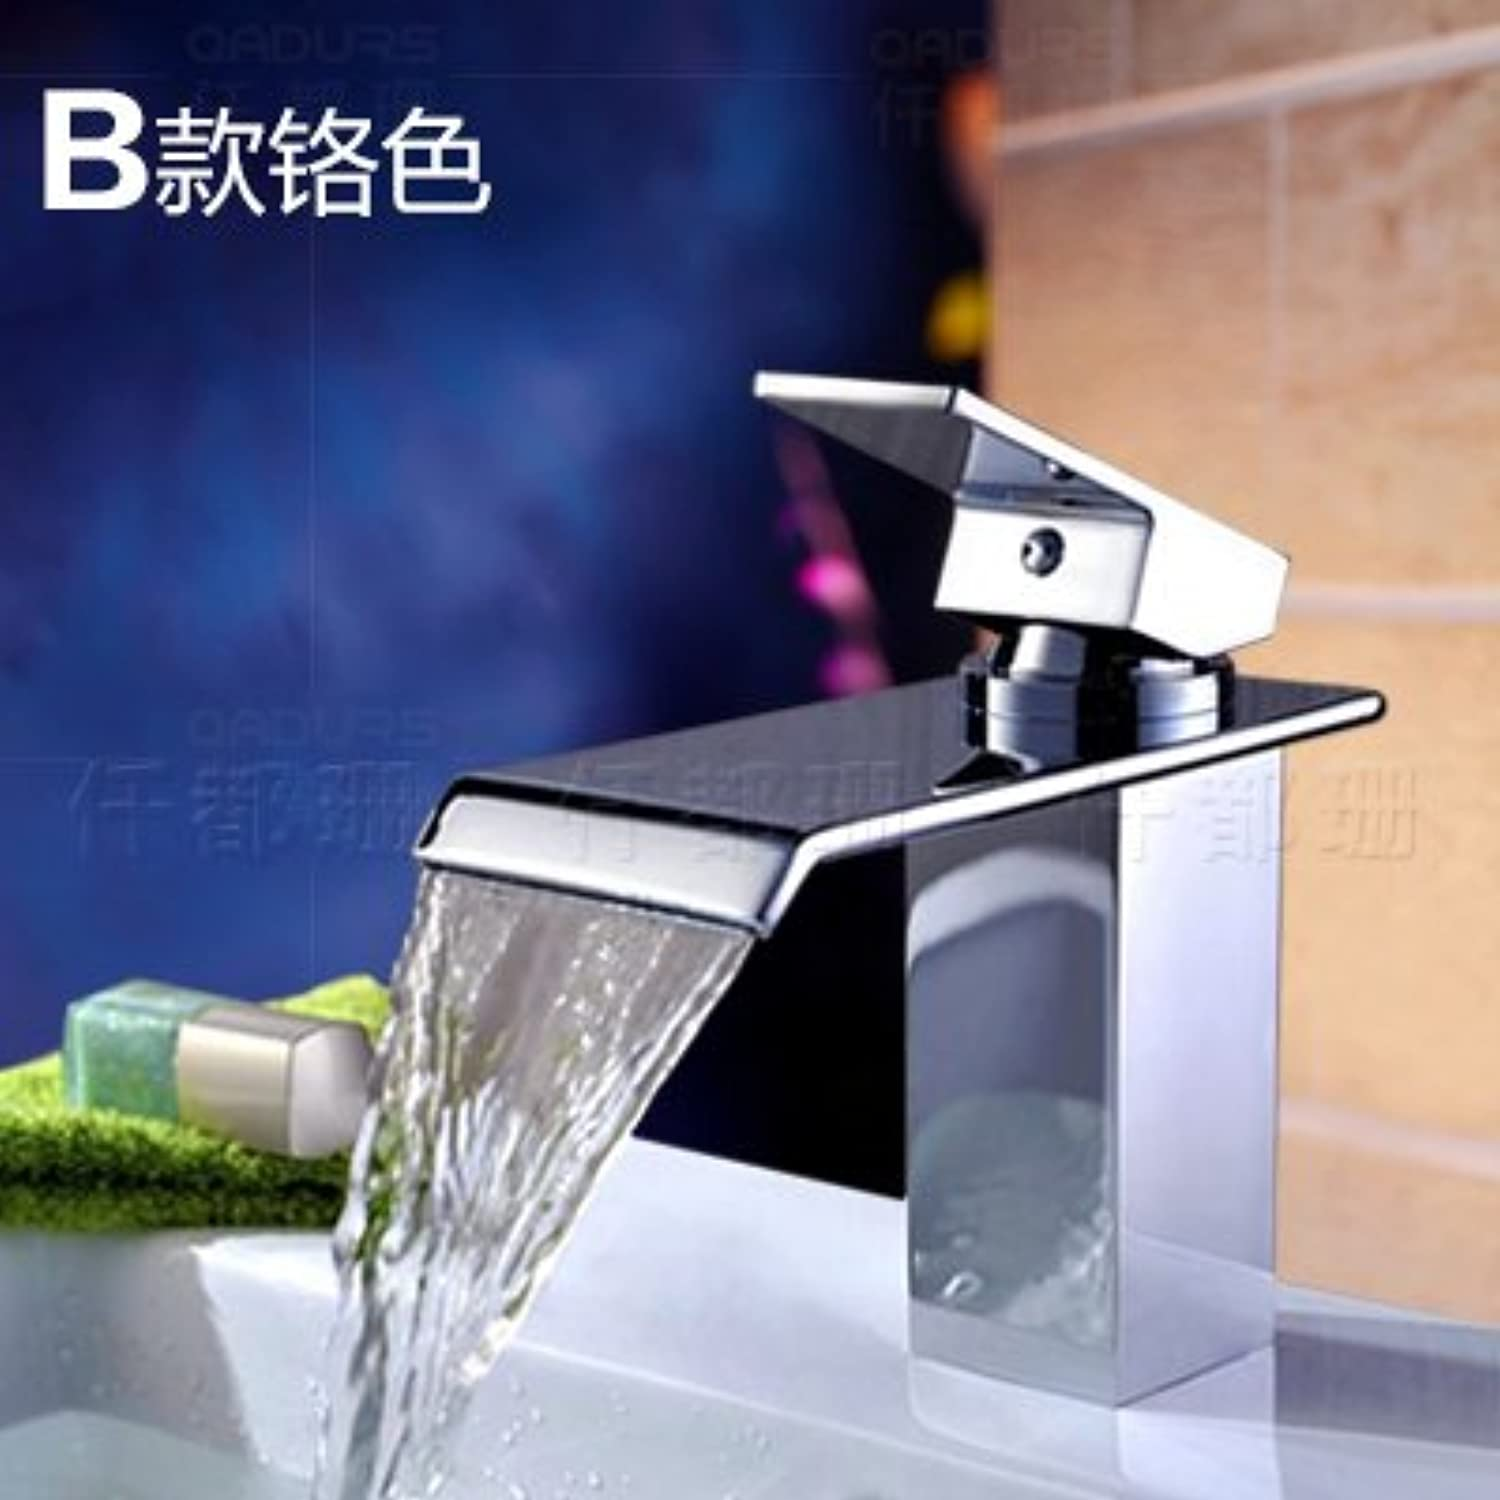 Hlluya Professional Sink Mixer Tap Kitchen Faucet A vanity area with water faucet basin waterfall faucet hot and cold full copper sink vanity faucet surface basin faucet single hole, B Chrome color